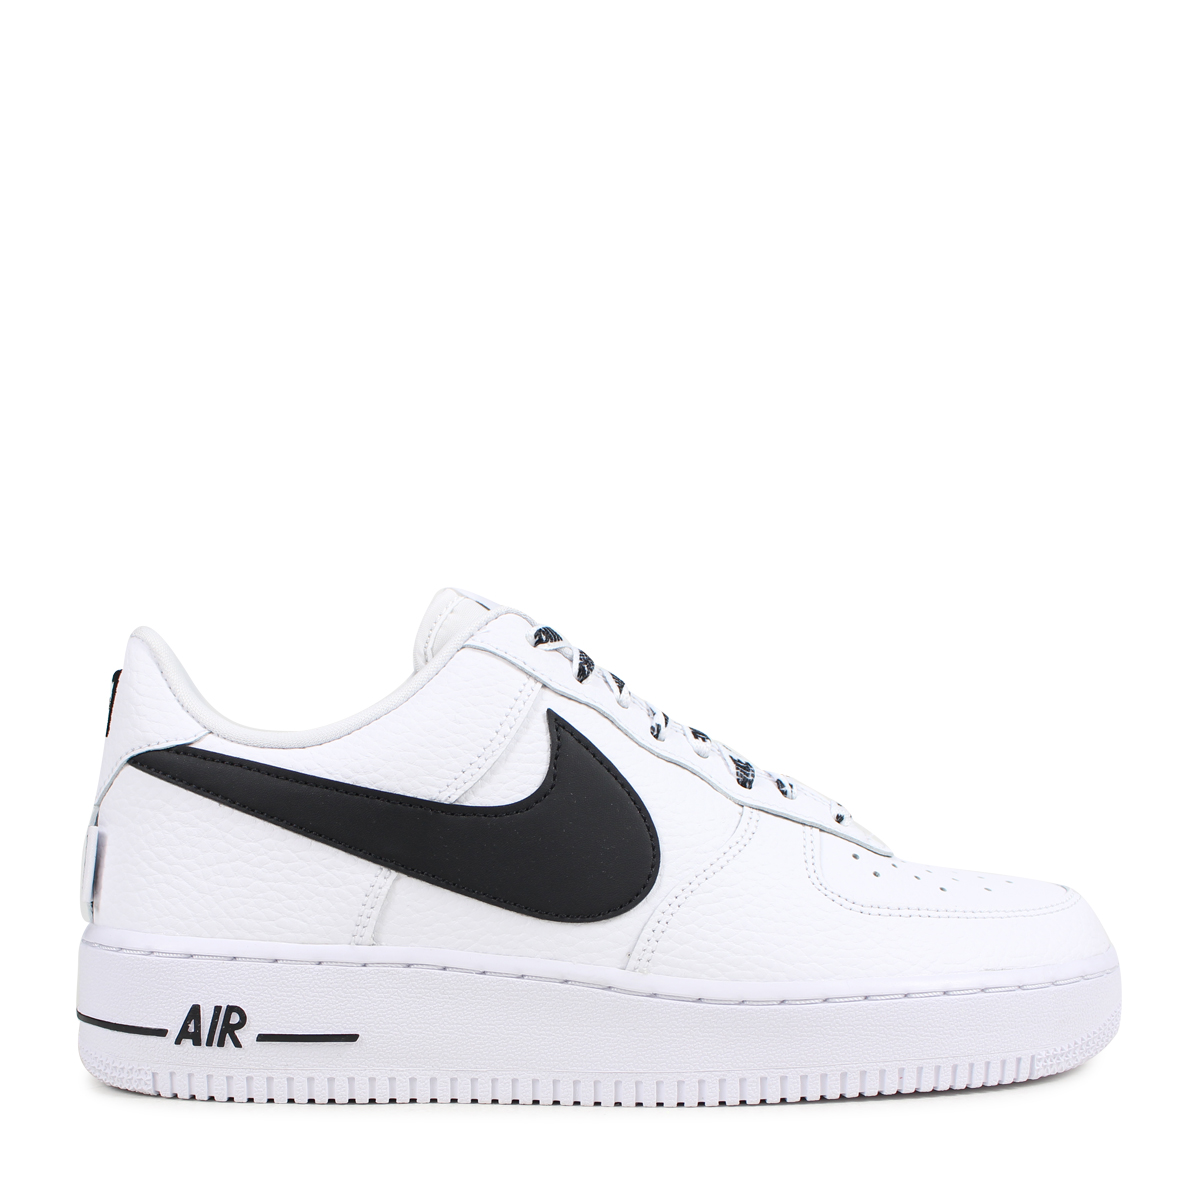 classic fit 72dd2 18047 ... NIKE AIR FORCE 1 STATEMENT GAME Nike air force 1 07 LV8 sneakers men  823,511- ...